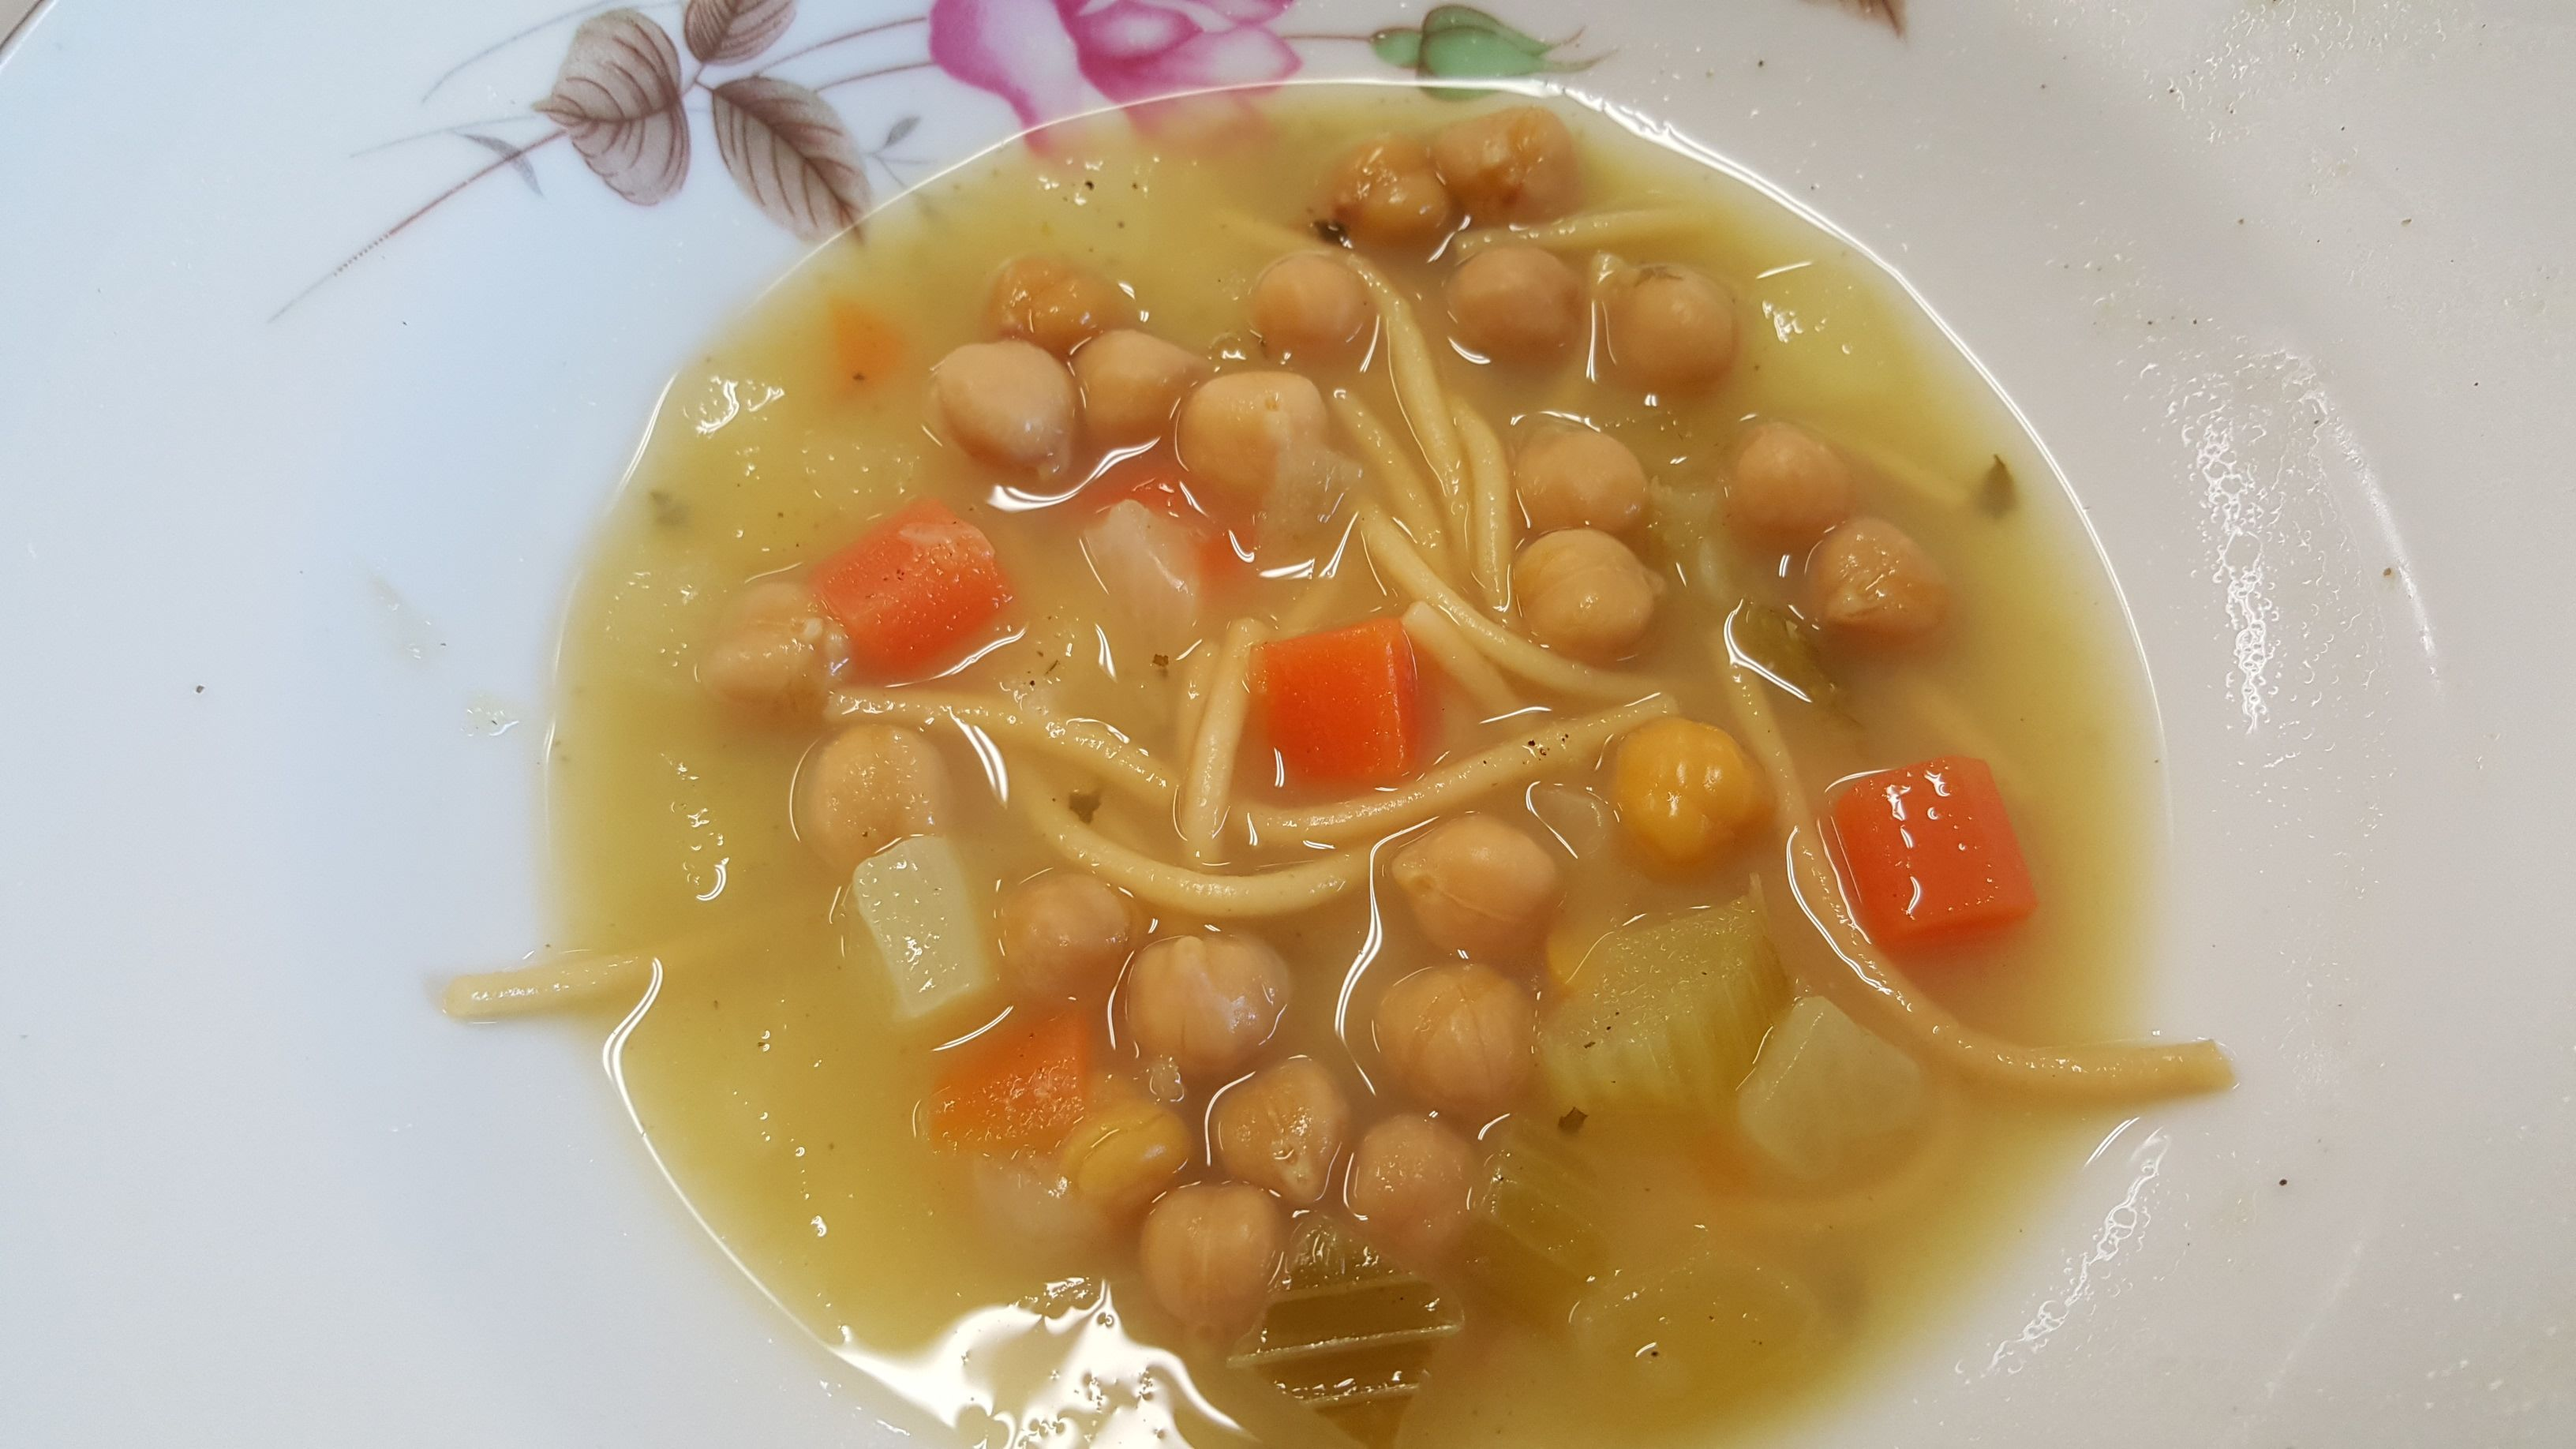 Is it Chickpea noodle soup or Chicken noodle soup That #chickpeanoodlesoup Is it Chickpea noodle soup or Chicken noodle soup That #chickpeanoodlesoup Is it Chickpea noodle soup or Chicken noodle soup That #chickpeanoodlesoup Is it Chickpea noodle soup or Chicken noodle soup That #chickpeanoodlesoup